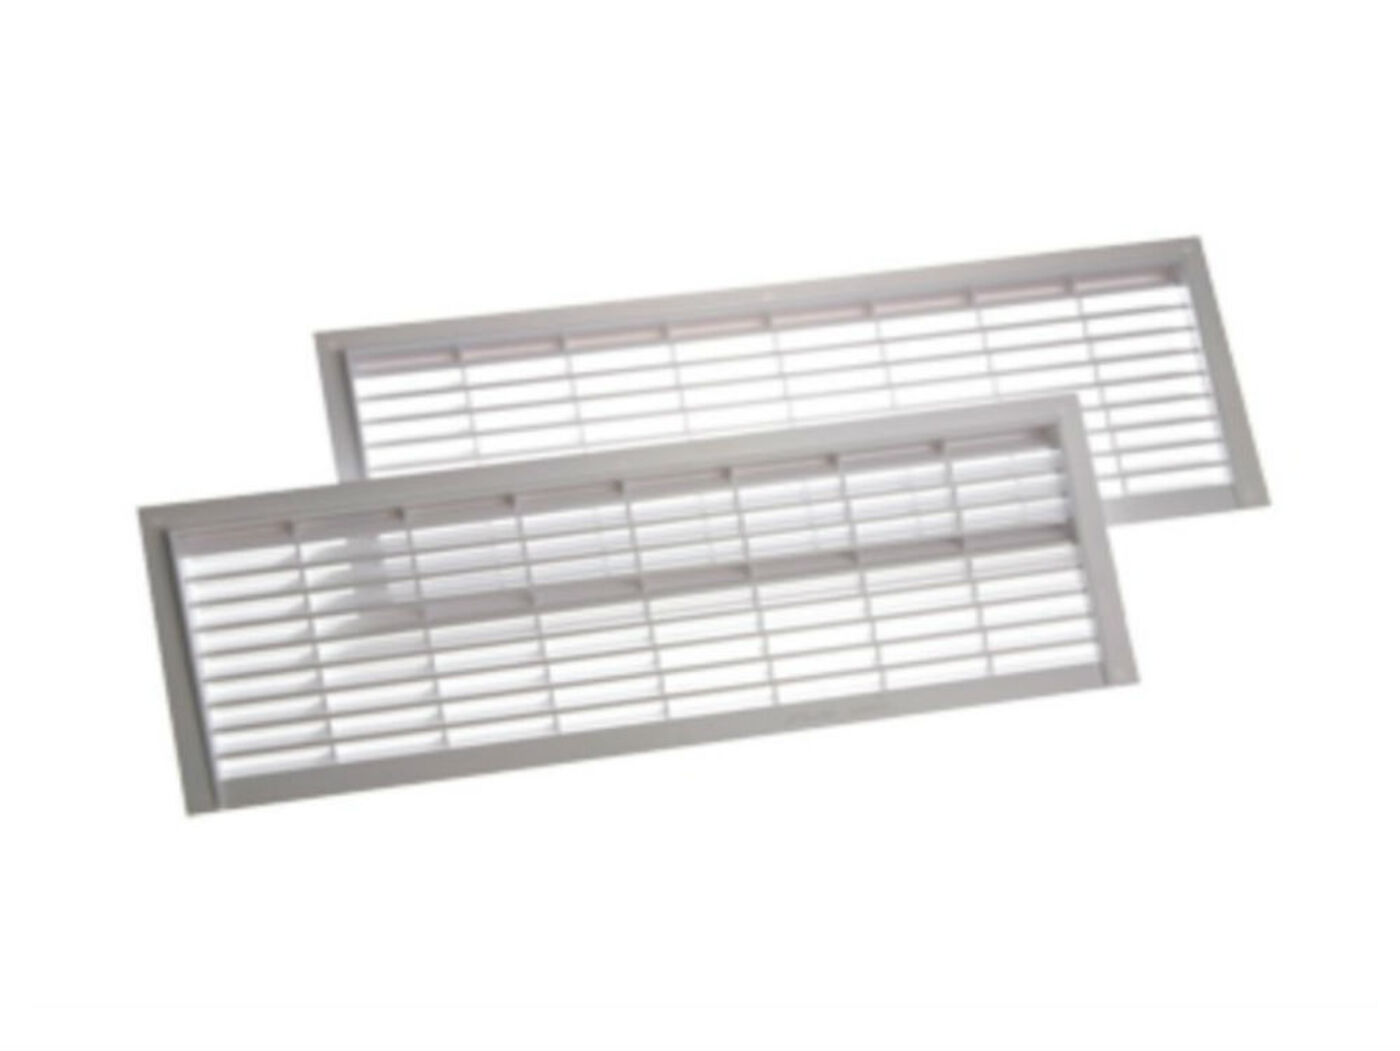 Accessory Shop Caravan Motorhome Ventilation Cooling Vents Vent Covers Fans Exterior Vent